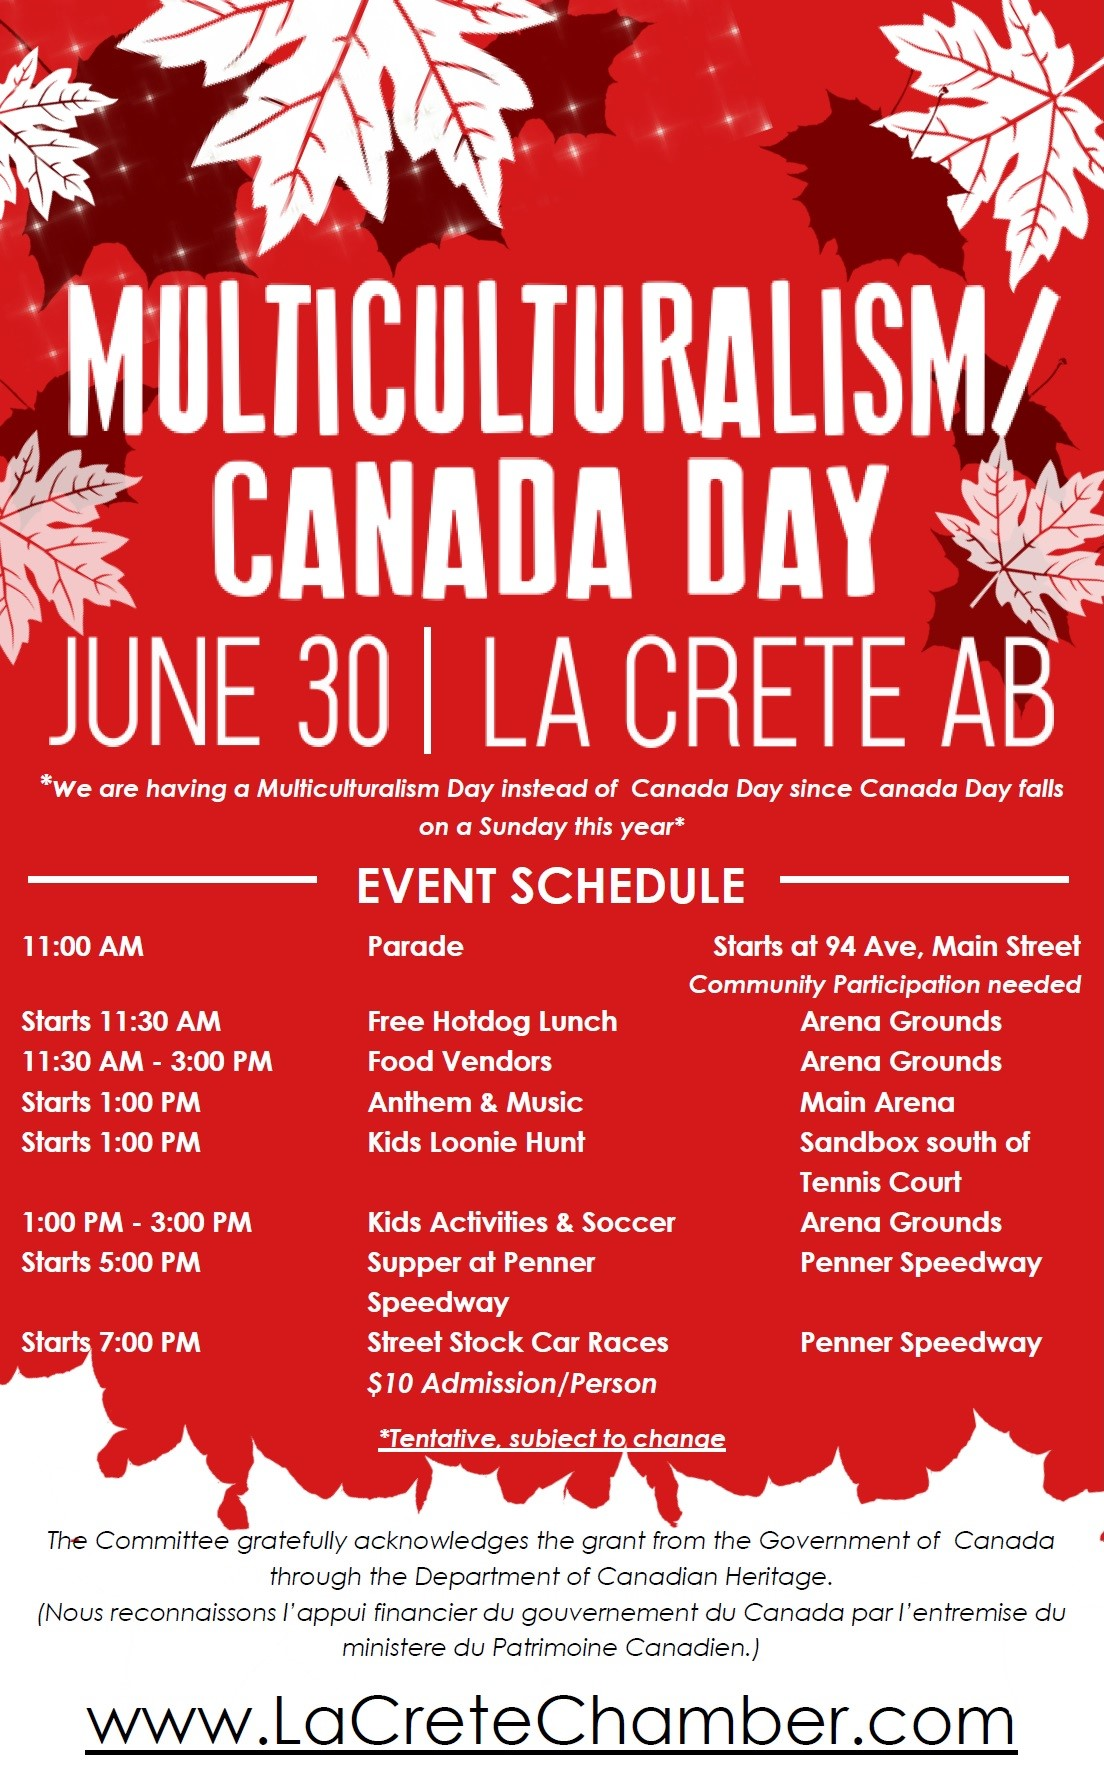 Multiculturalism - Canada Day Poster 2018 REVAMP